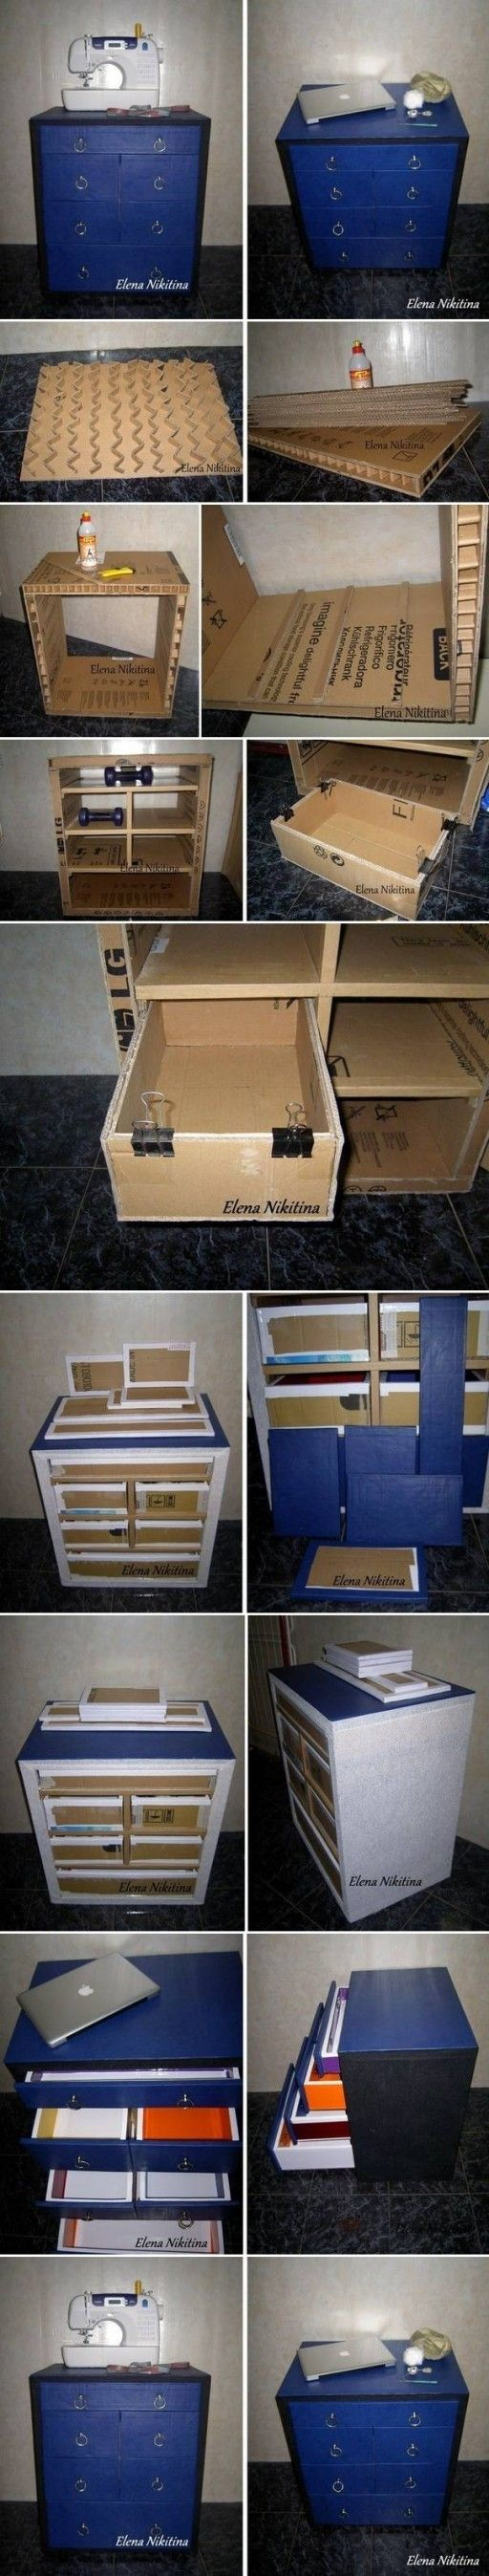 How to make Cardboard Chest with Drawers storage units step by step DIY tutorial instructions, How to, how to do, diy instructions, crafts, by Mary Smith fSesz